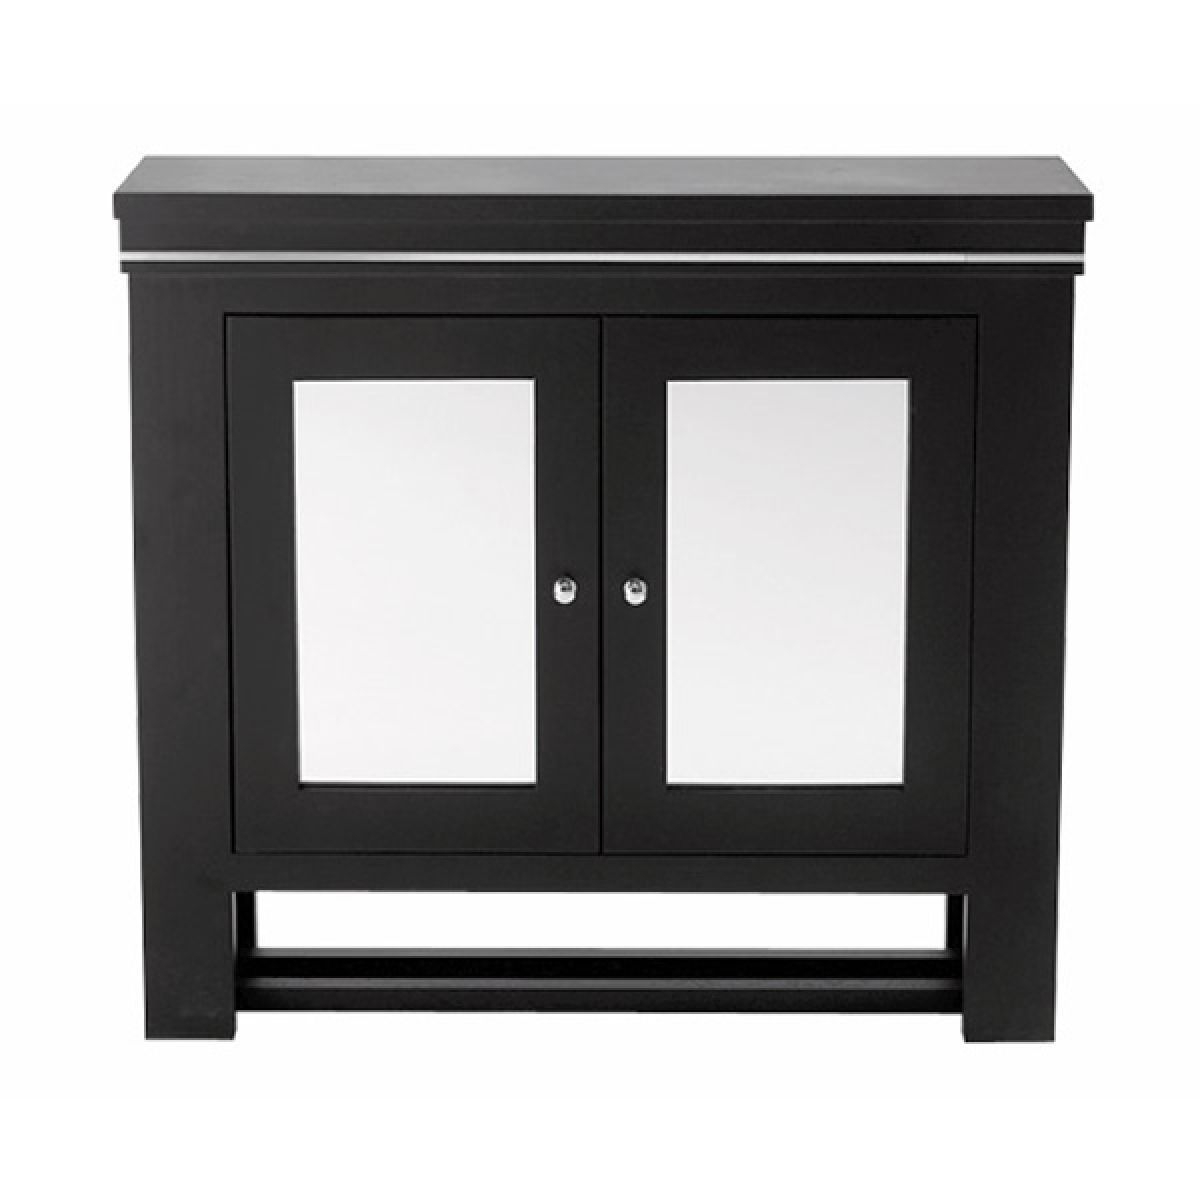 Imperial Astoria Deco Harmony Mirror Wall Cabinet 2 Doors Uk Bathrooms